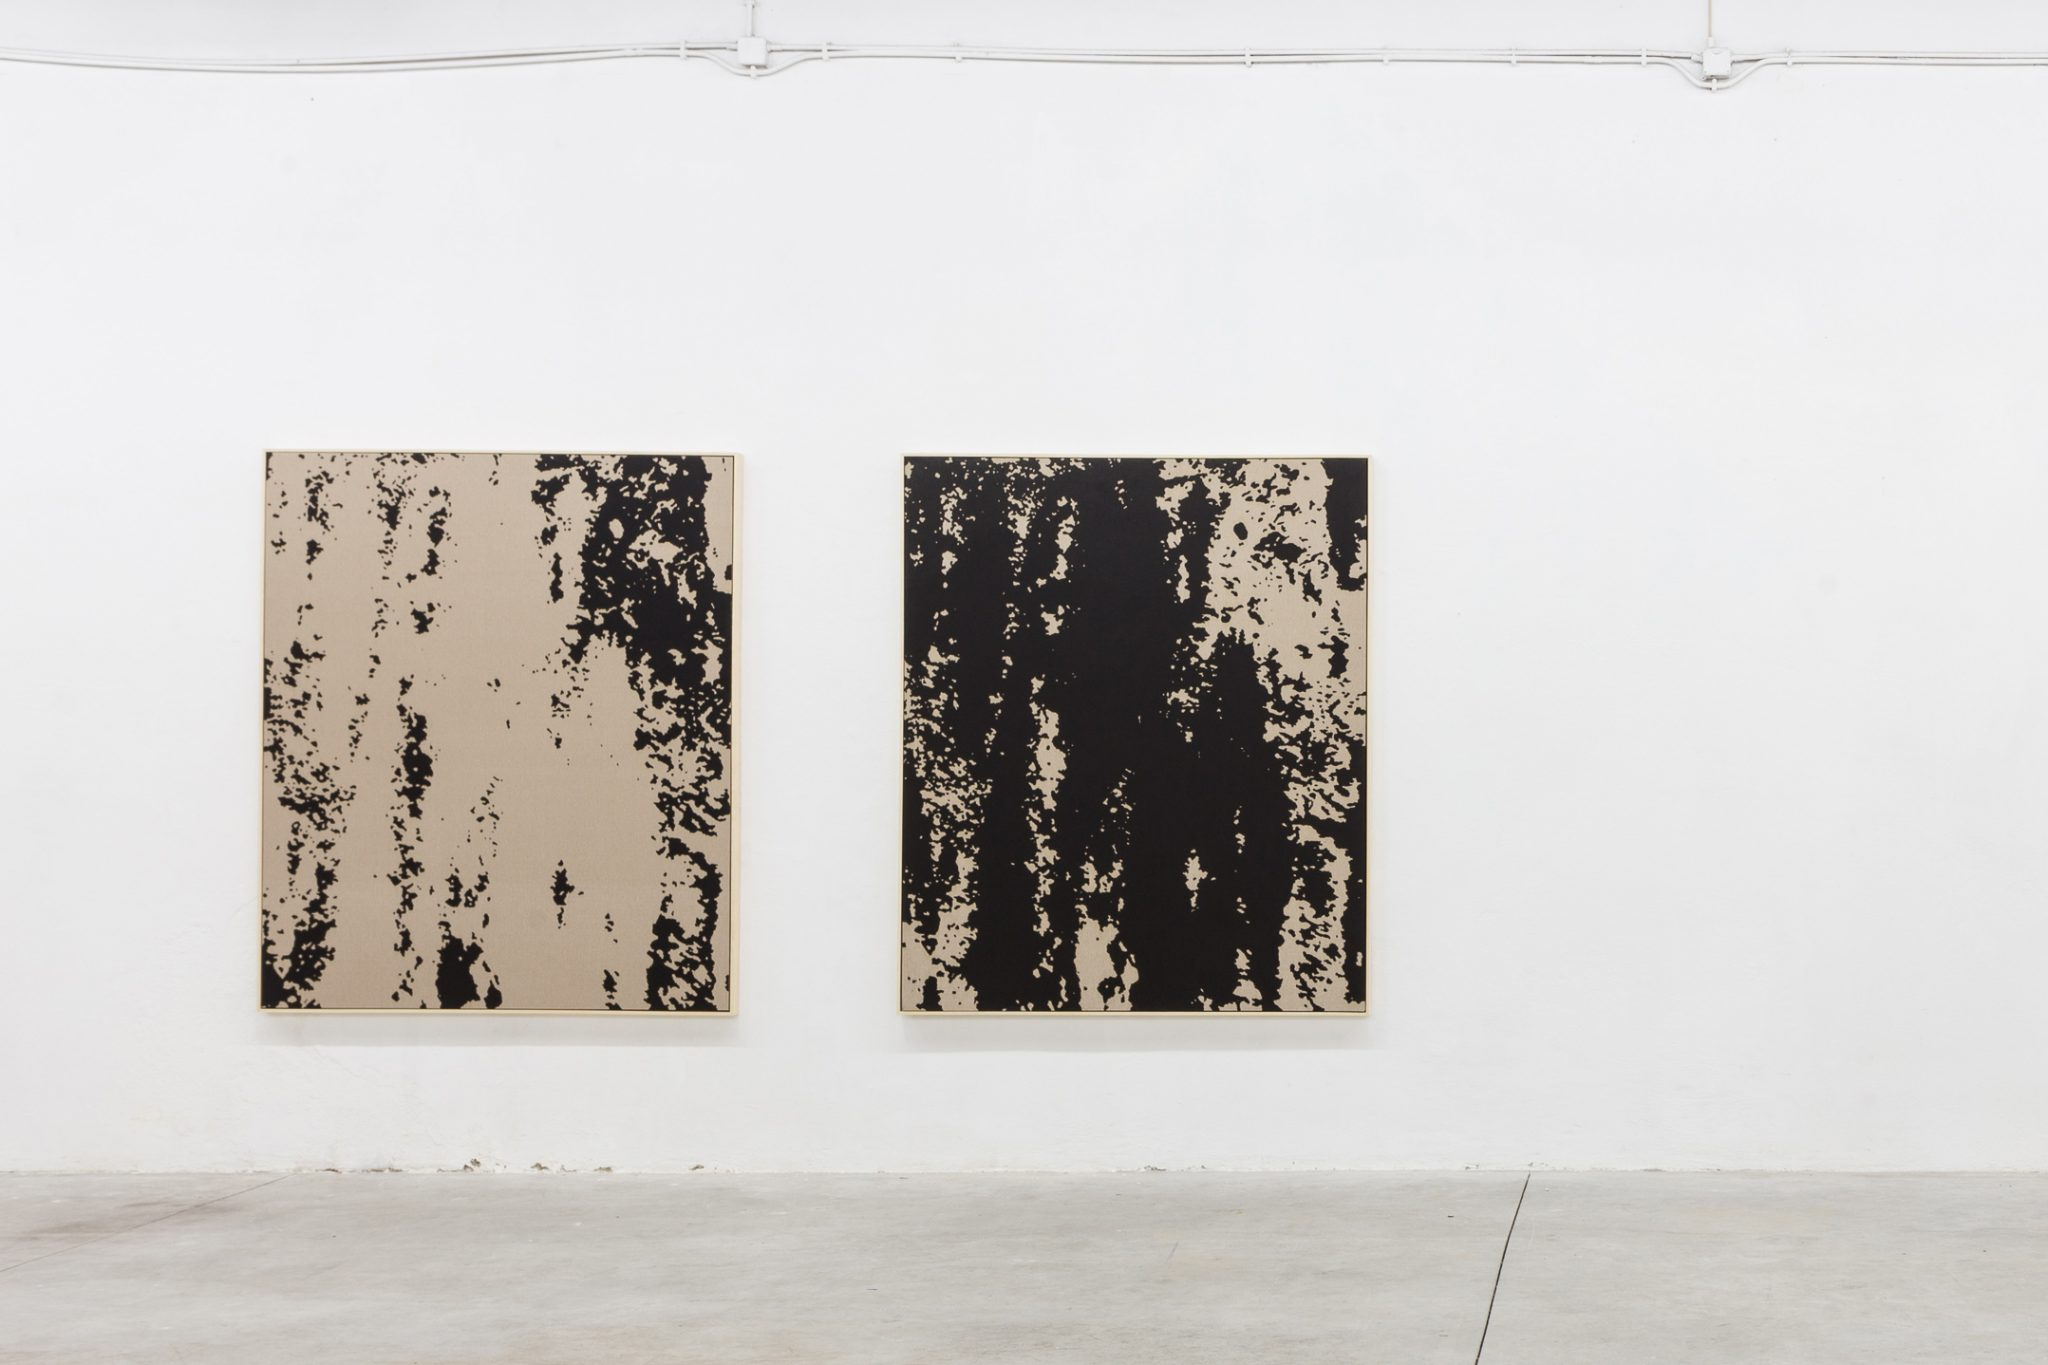 Pedro Matos, Scandale Project, contemporary art, painting, art, visual art, art installation, scandaleproject,